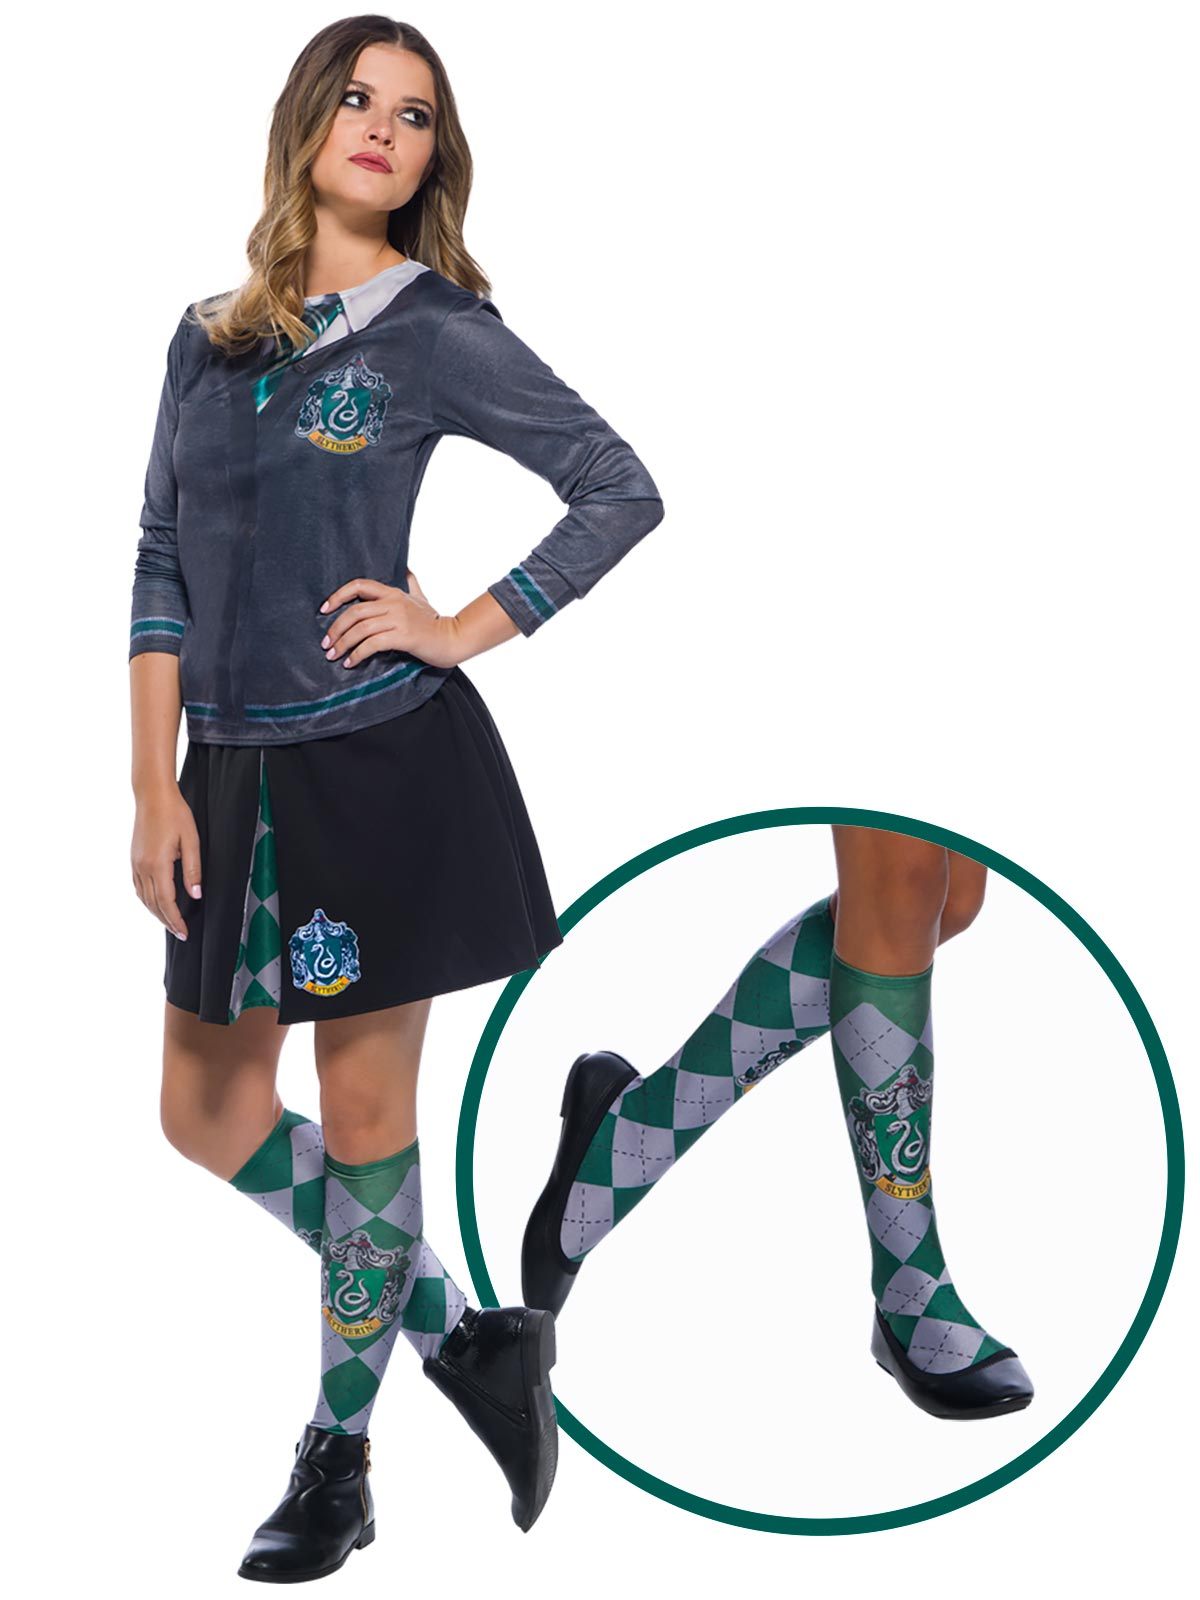 Harry Potter Slytherin House Socks - Buy Online Only